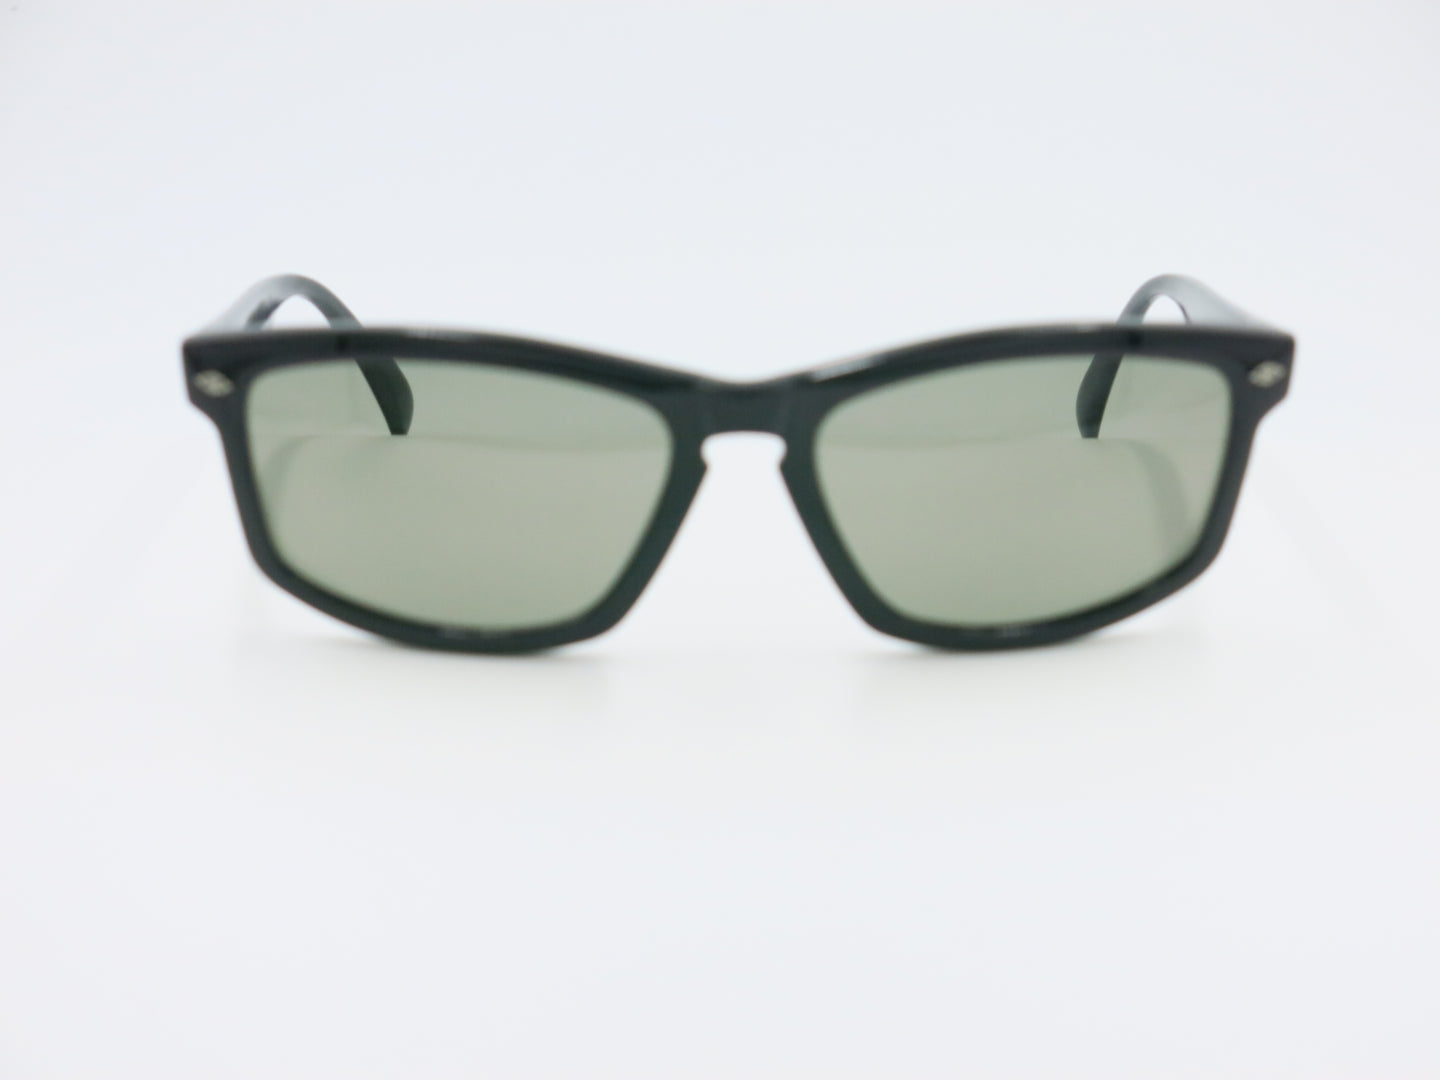 Killer Loop Sunglasses - RC 9406 | Sunglasses by Killer Loop | Friedman & Sons